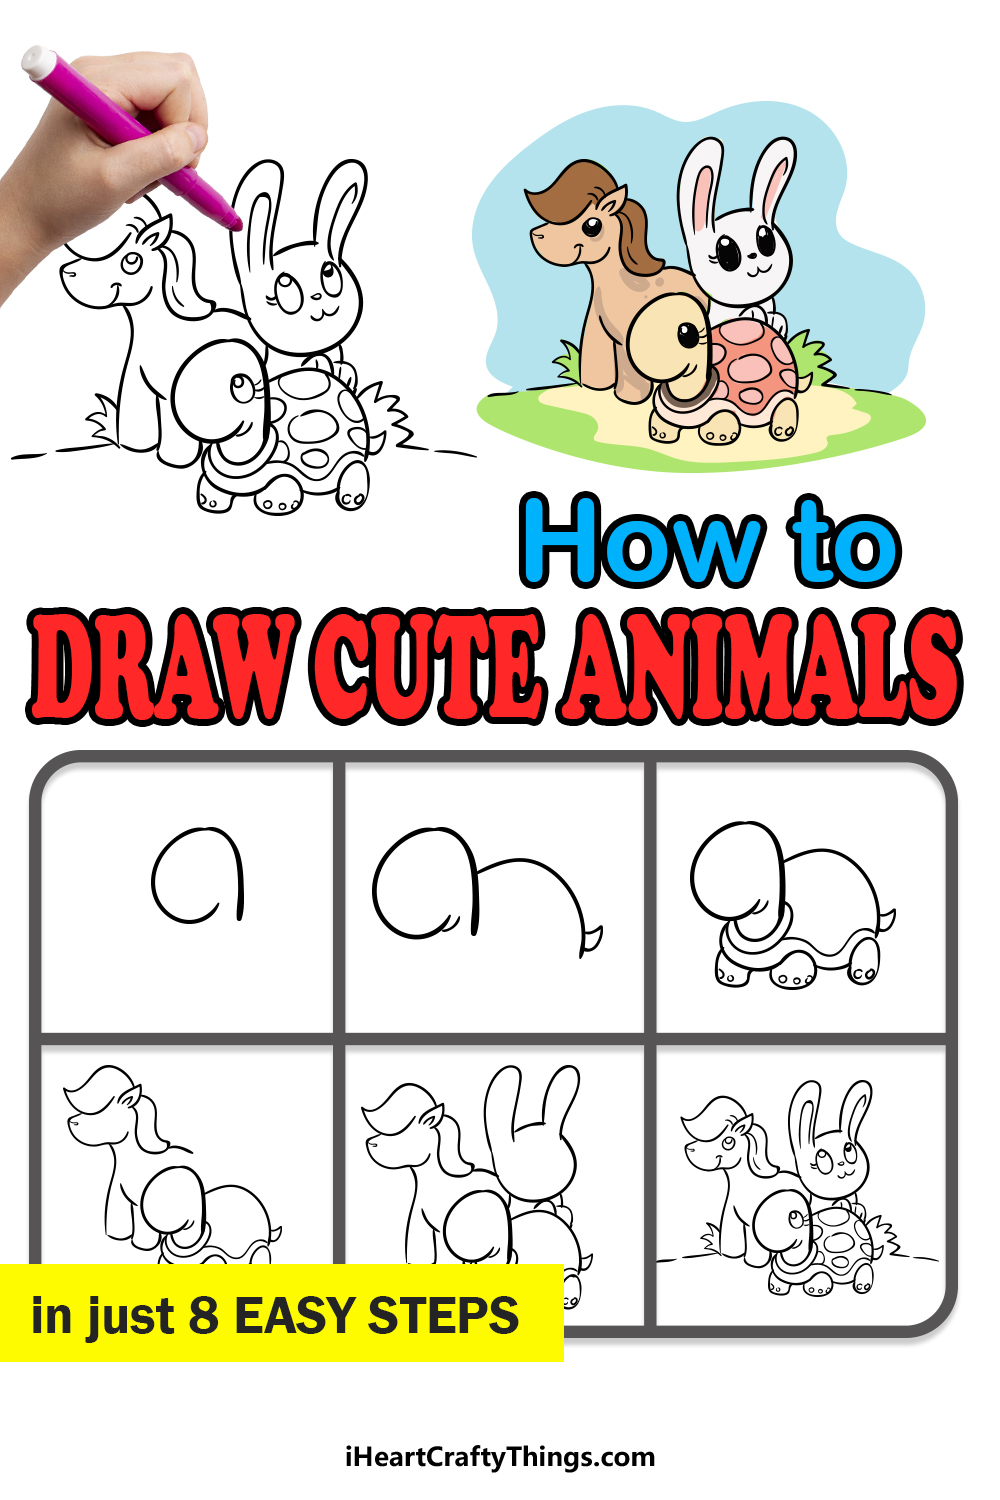 how to draw cute animals in 8 easy steps